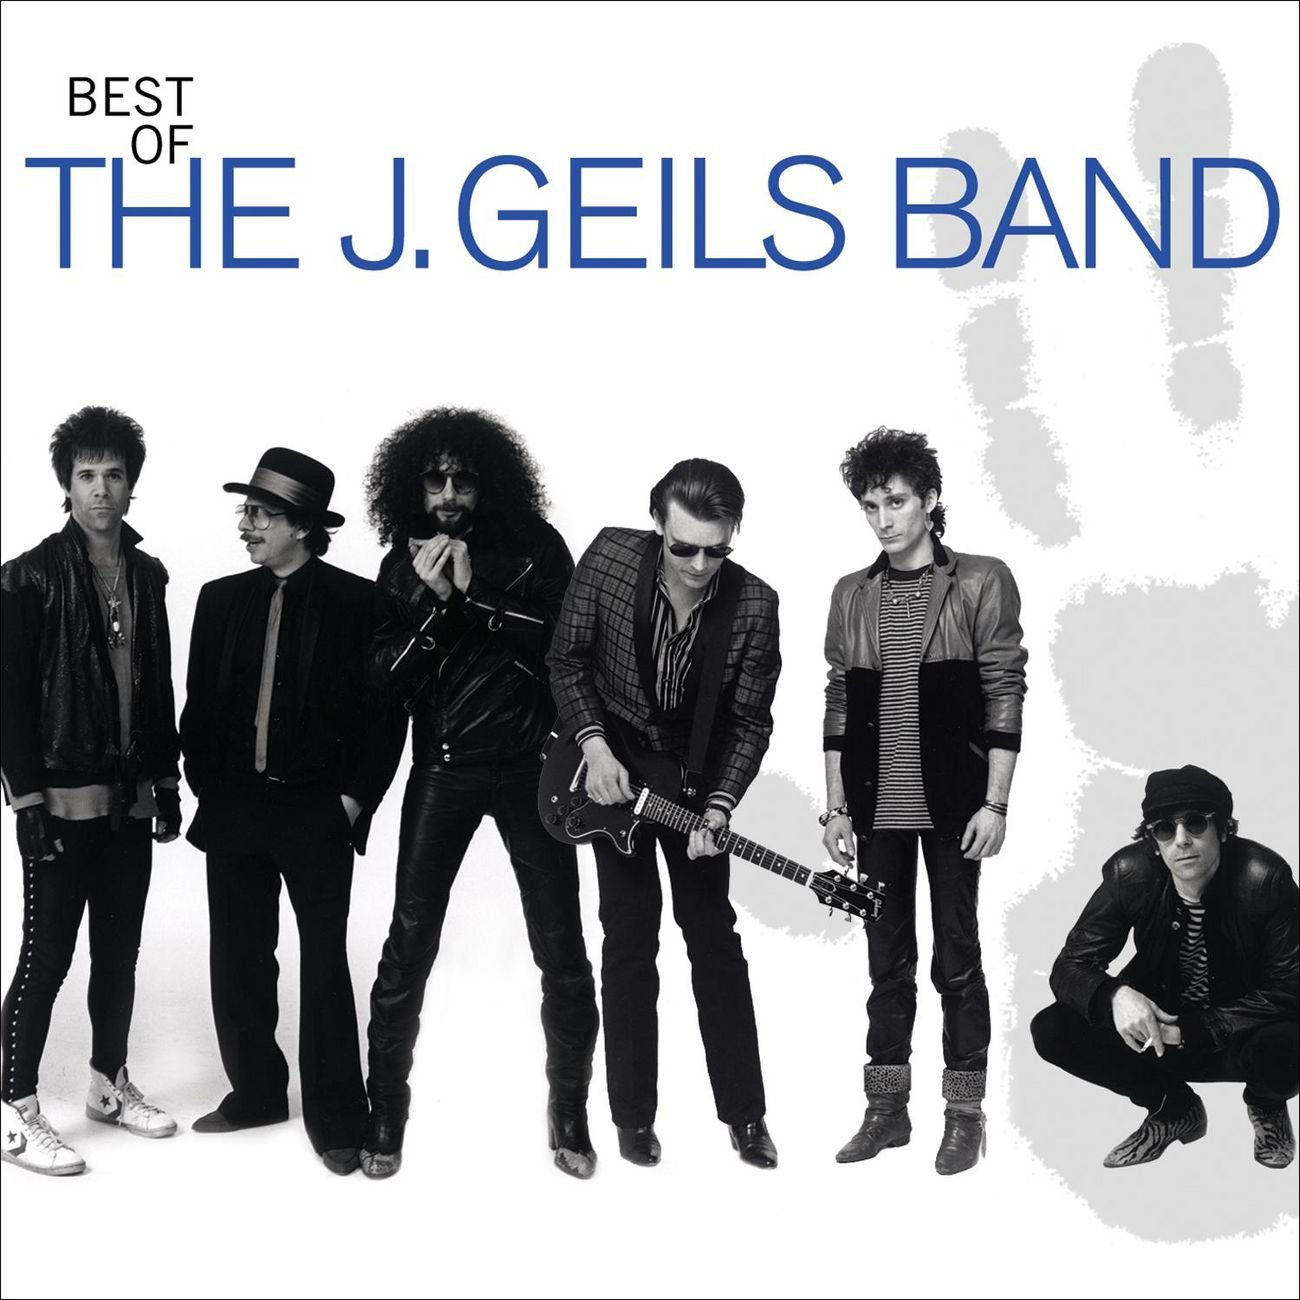 Best of the J. Geils Band by EMI Music Distribution